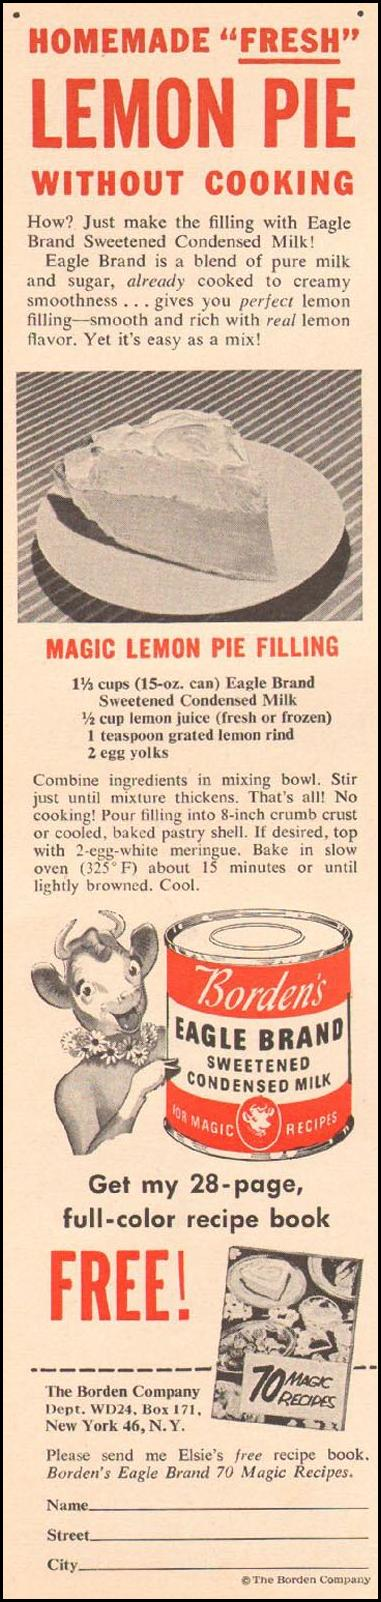 BORDEN'S EAGLE BRAND SWEETENED CONDENSED MILK